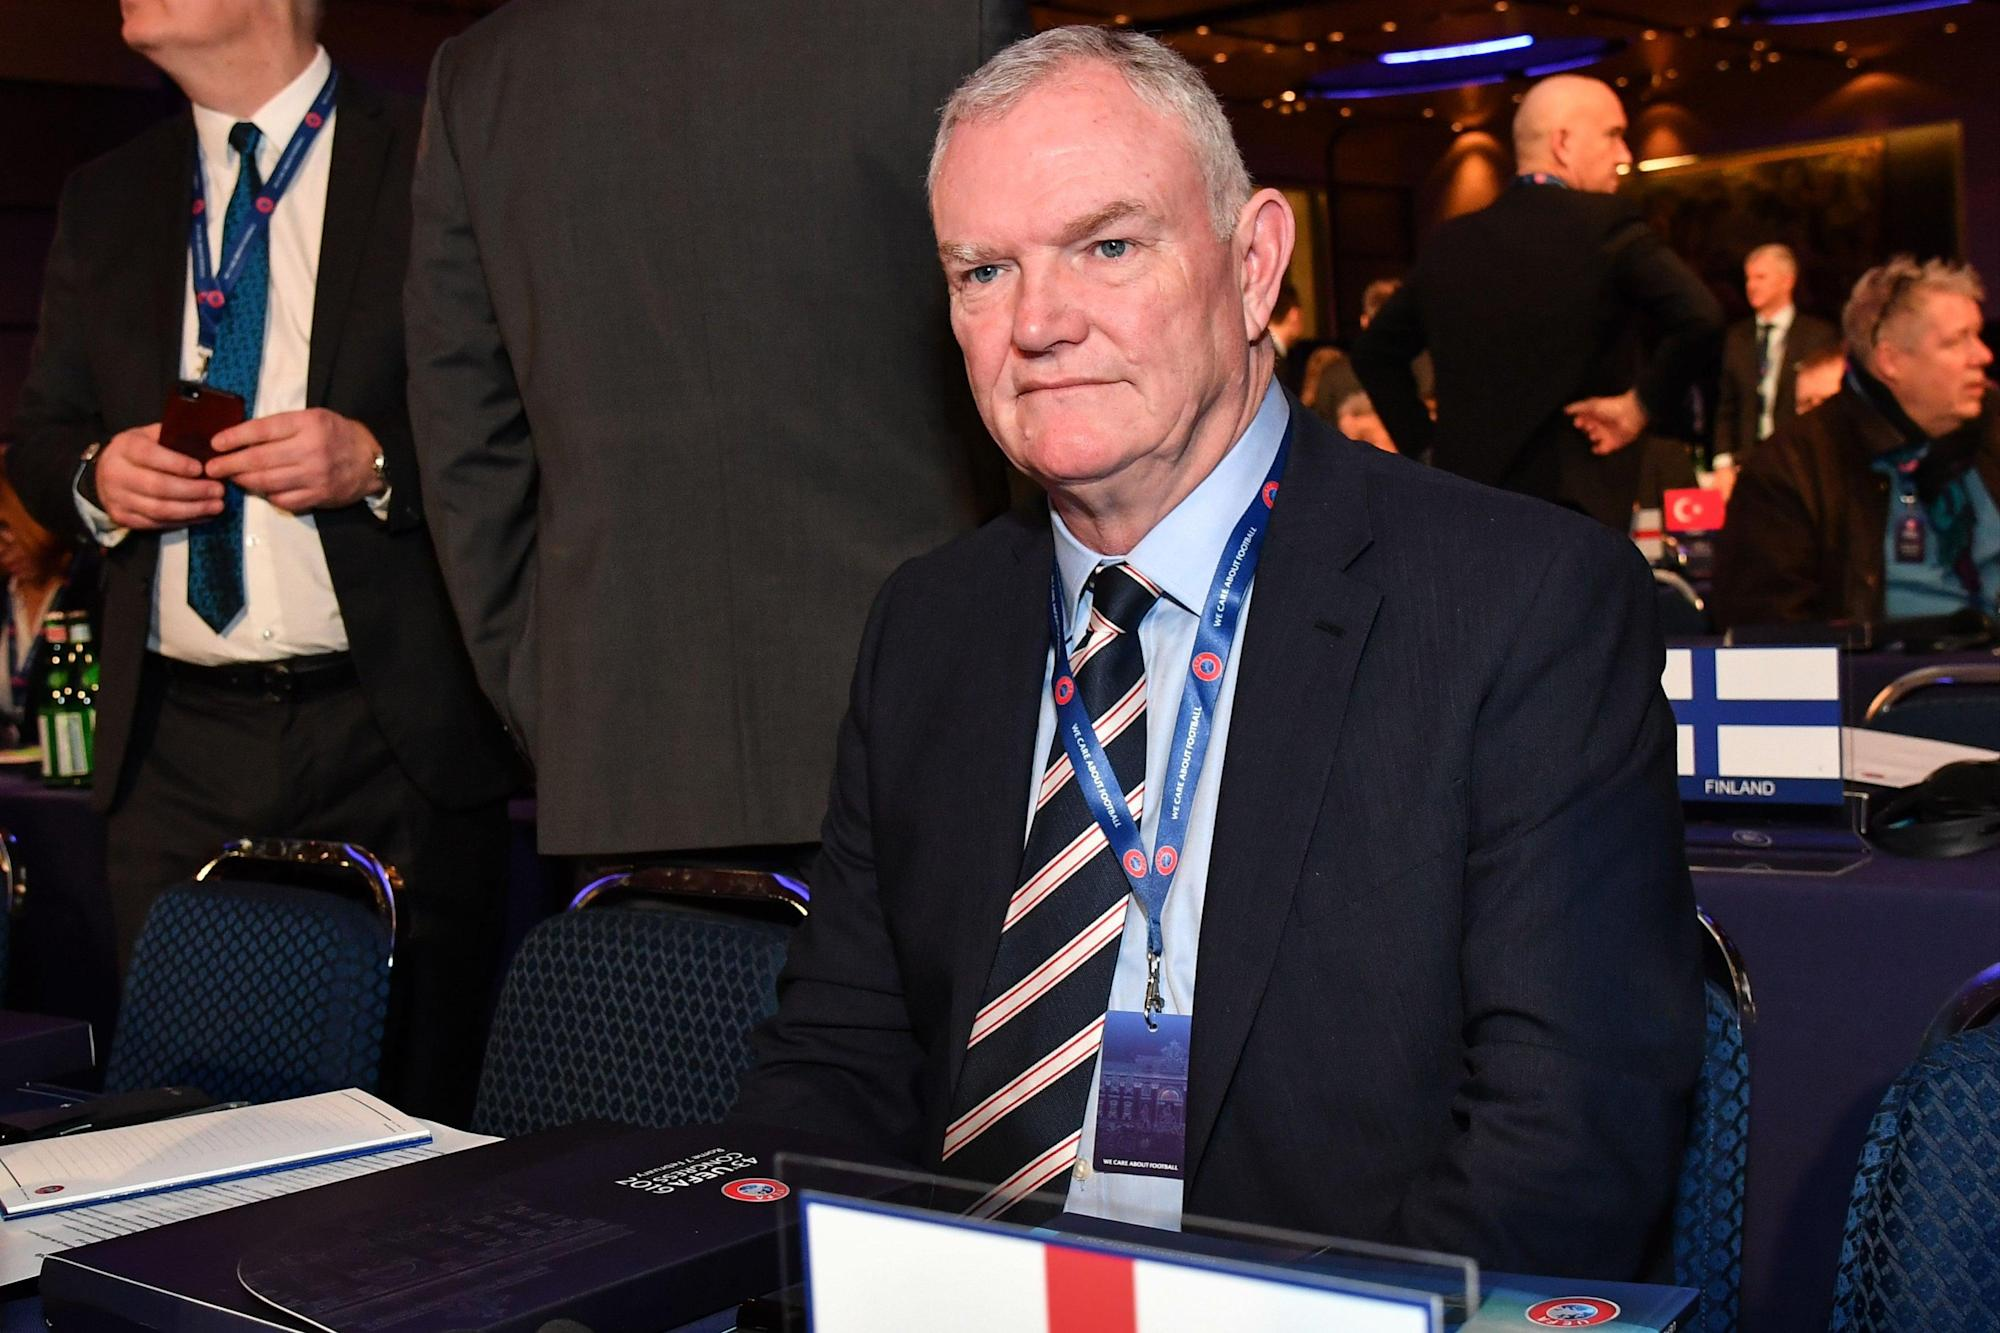 Kick It Out criticise FA chairman Greg Clarke for 'unacceptable' comments to DCMS committee